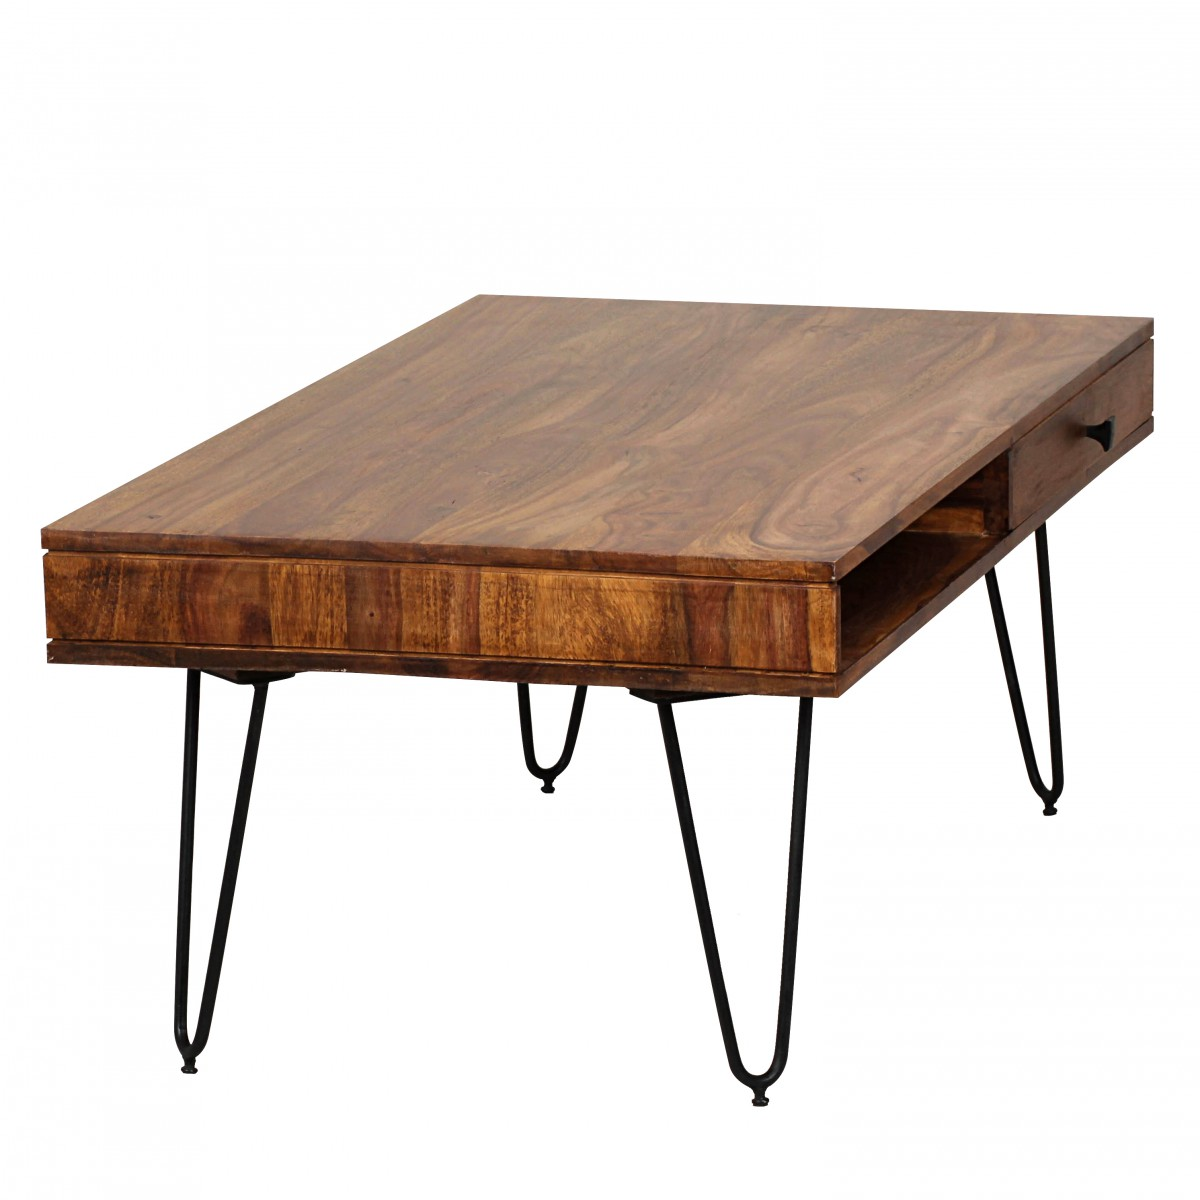 wohnling solid wood sheesham coffee table 120 x 60 x 40 cm